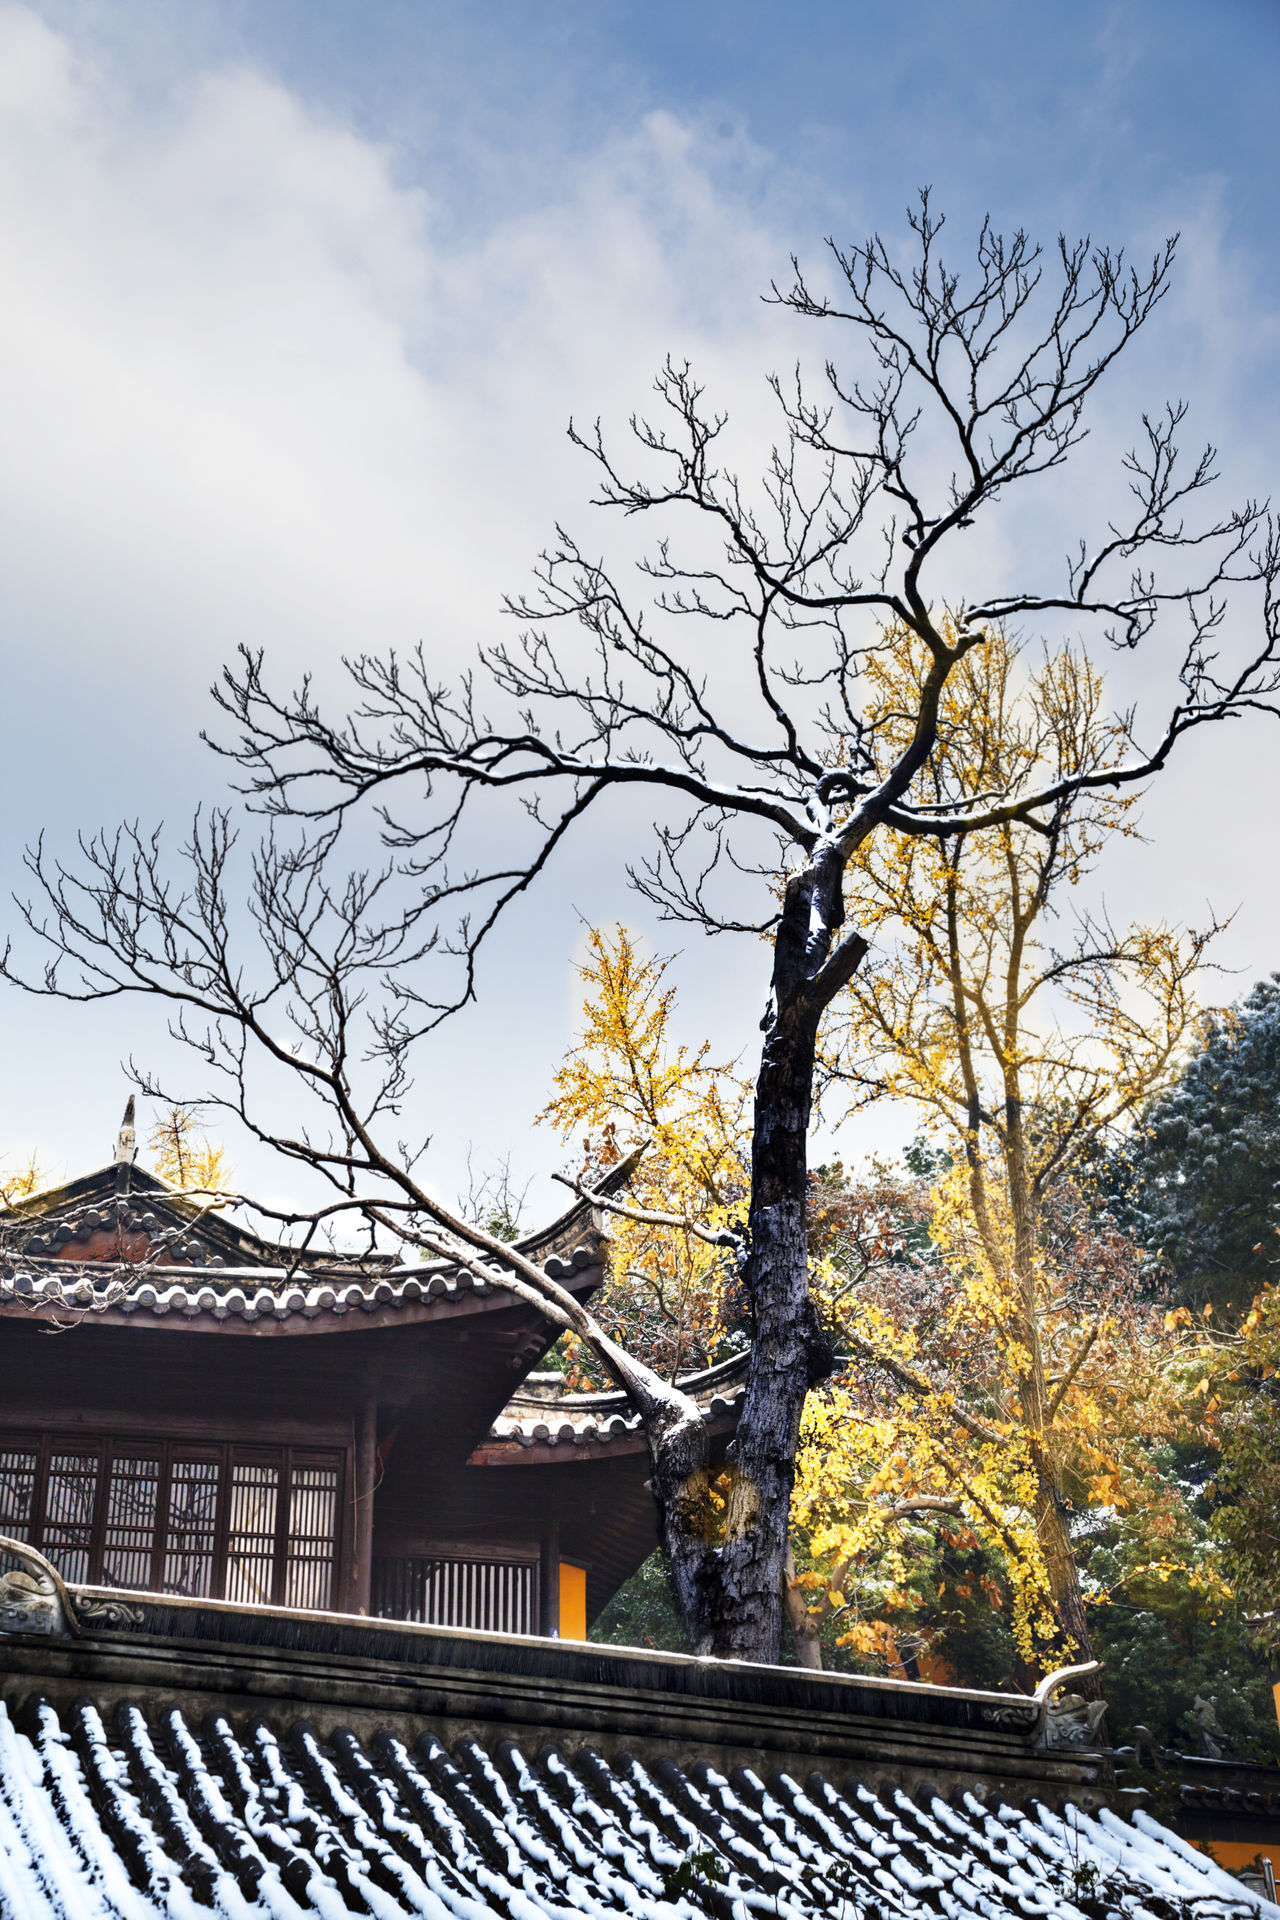 The Fall colors in the snow Famous Places Tourist Attractions Tourist Destination Architecture Autumn Autumn Leaves Building Exterior Built Structure City Day Fall Beauty Fall Colors Fall Leaves Ginkgo Trees Nature No People Outdoors Sky Snow Snow Vew Tree Vertical Composition